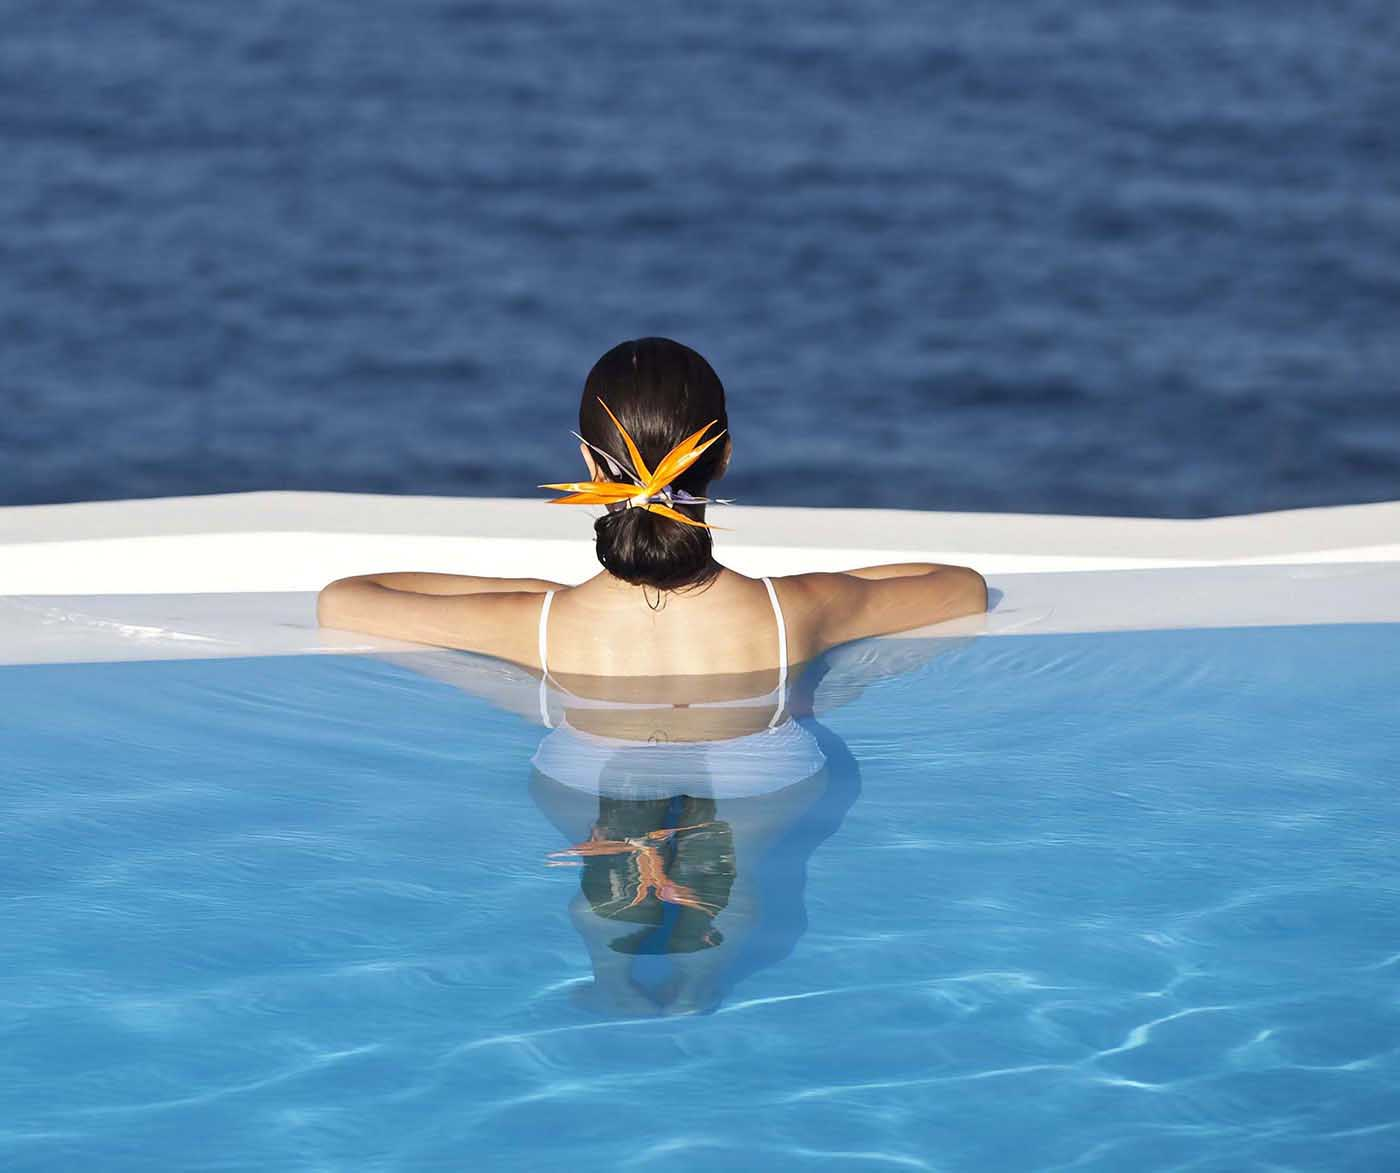 Santorini hotels & resorts, 50% discount for early bookings, Santorini, Cyclades Islands, Greece